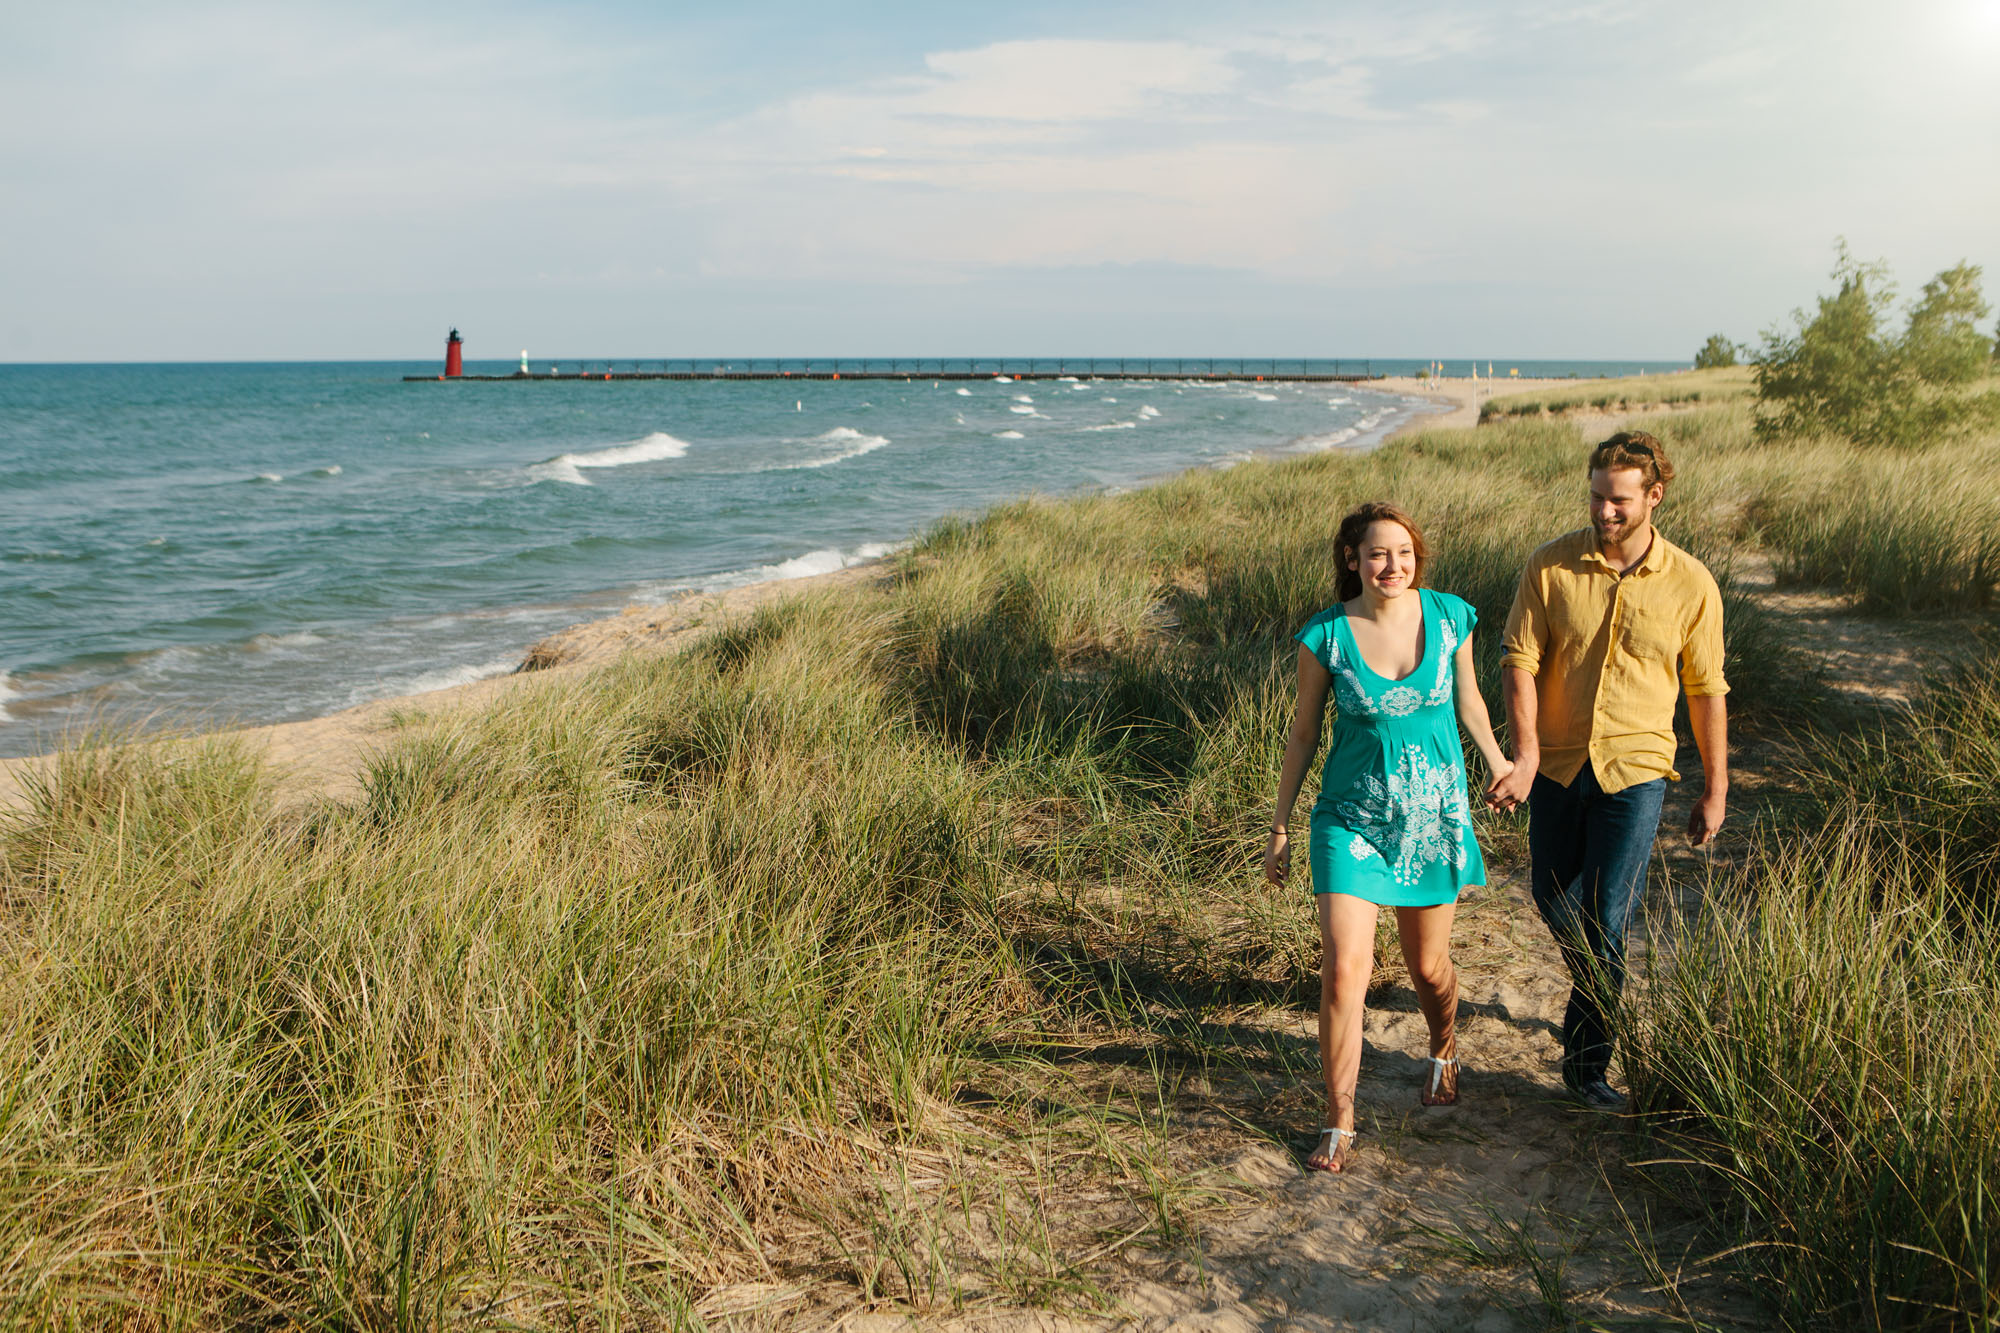 011_SouthHaven_6868